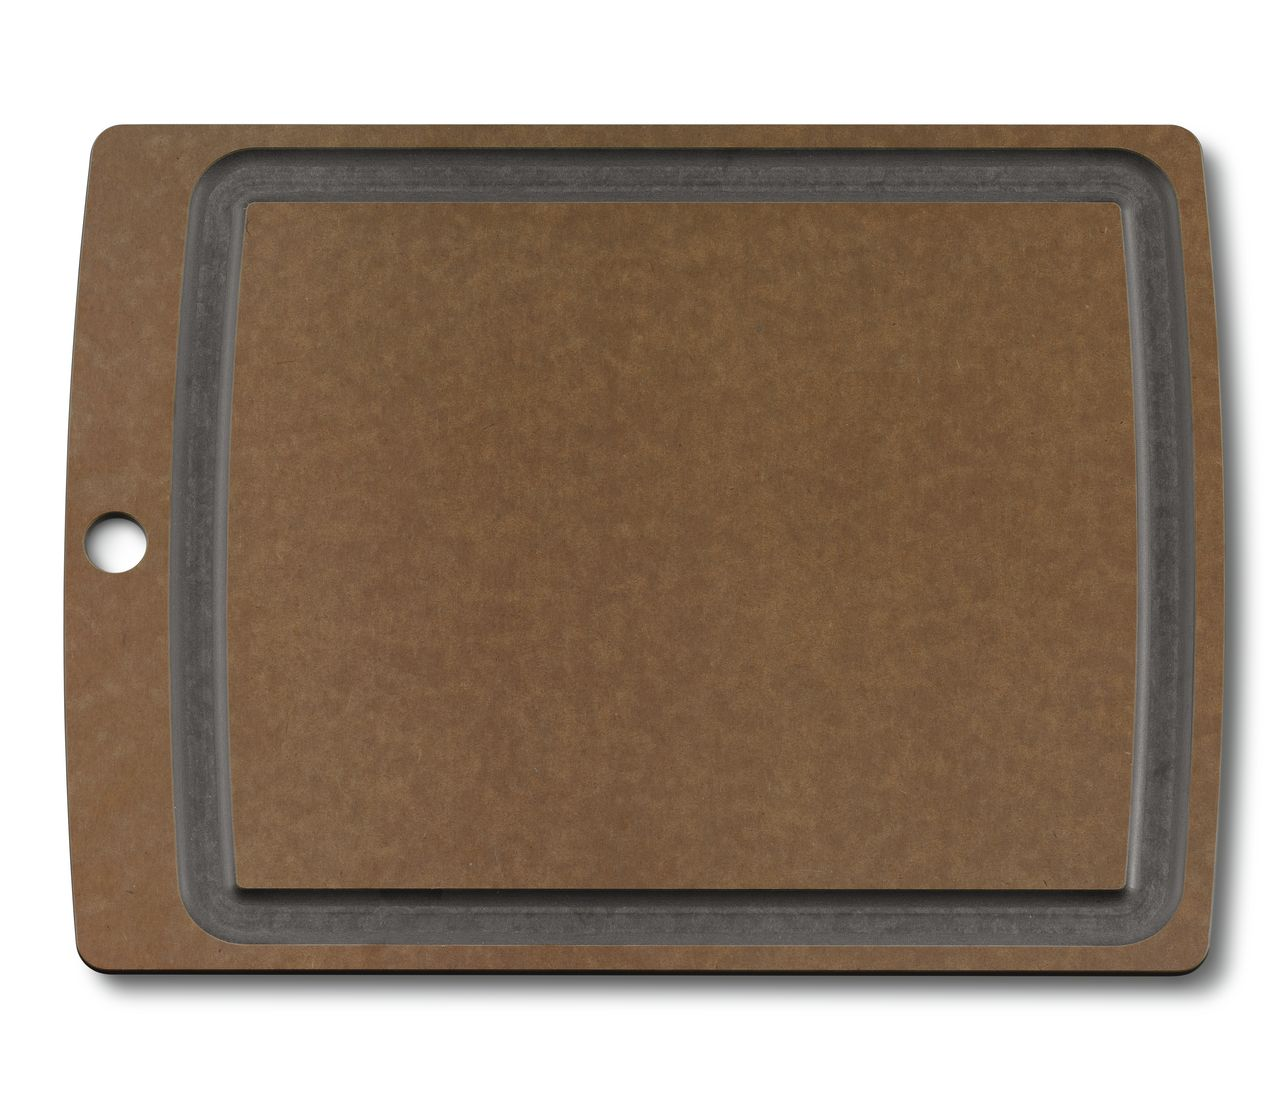 Allrounder Cutting Board Big-7.4114